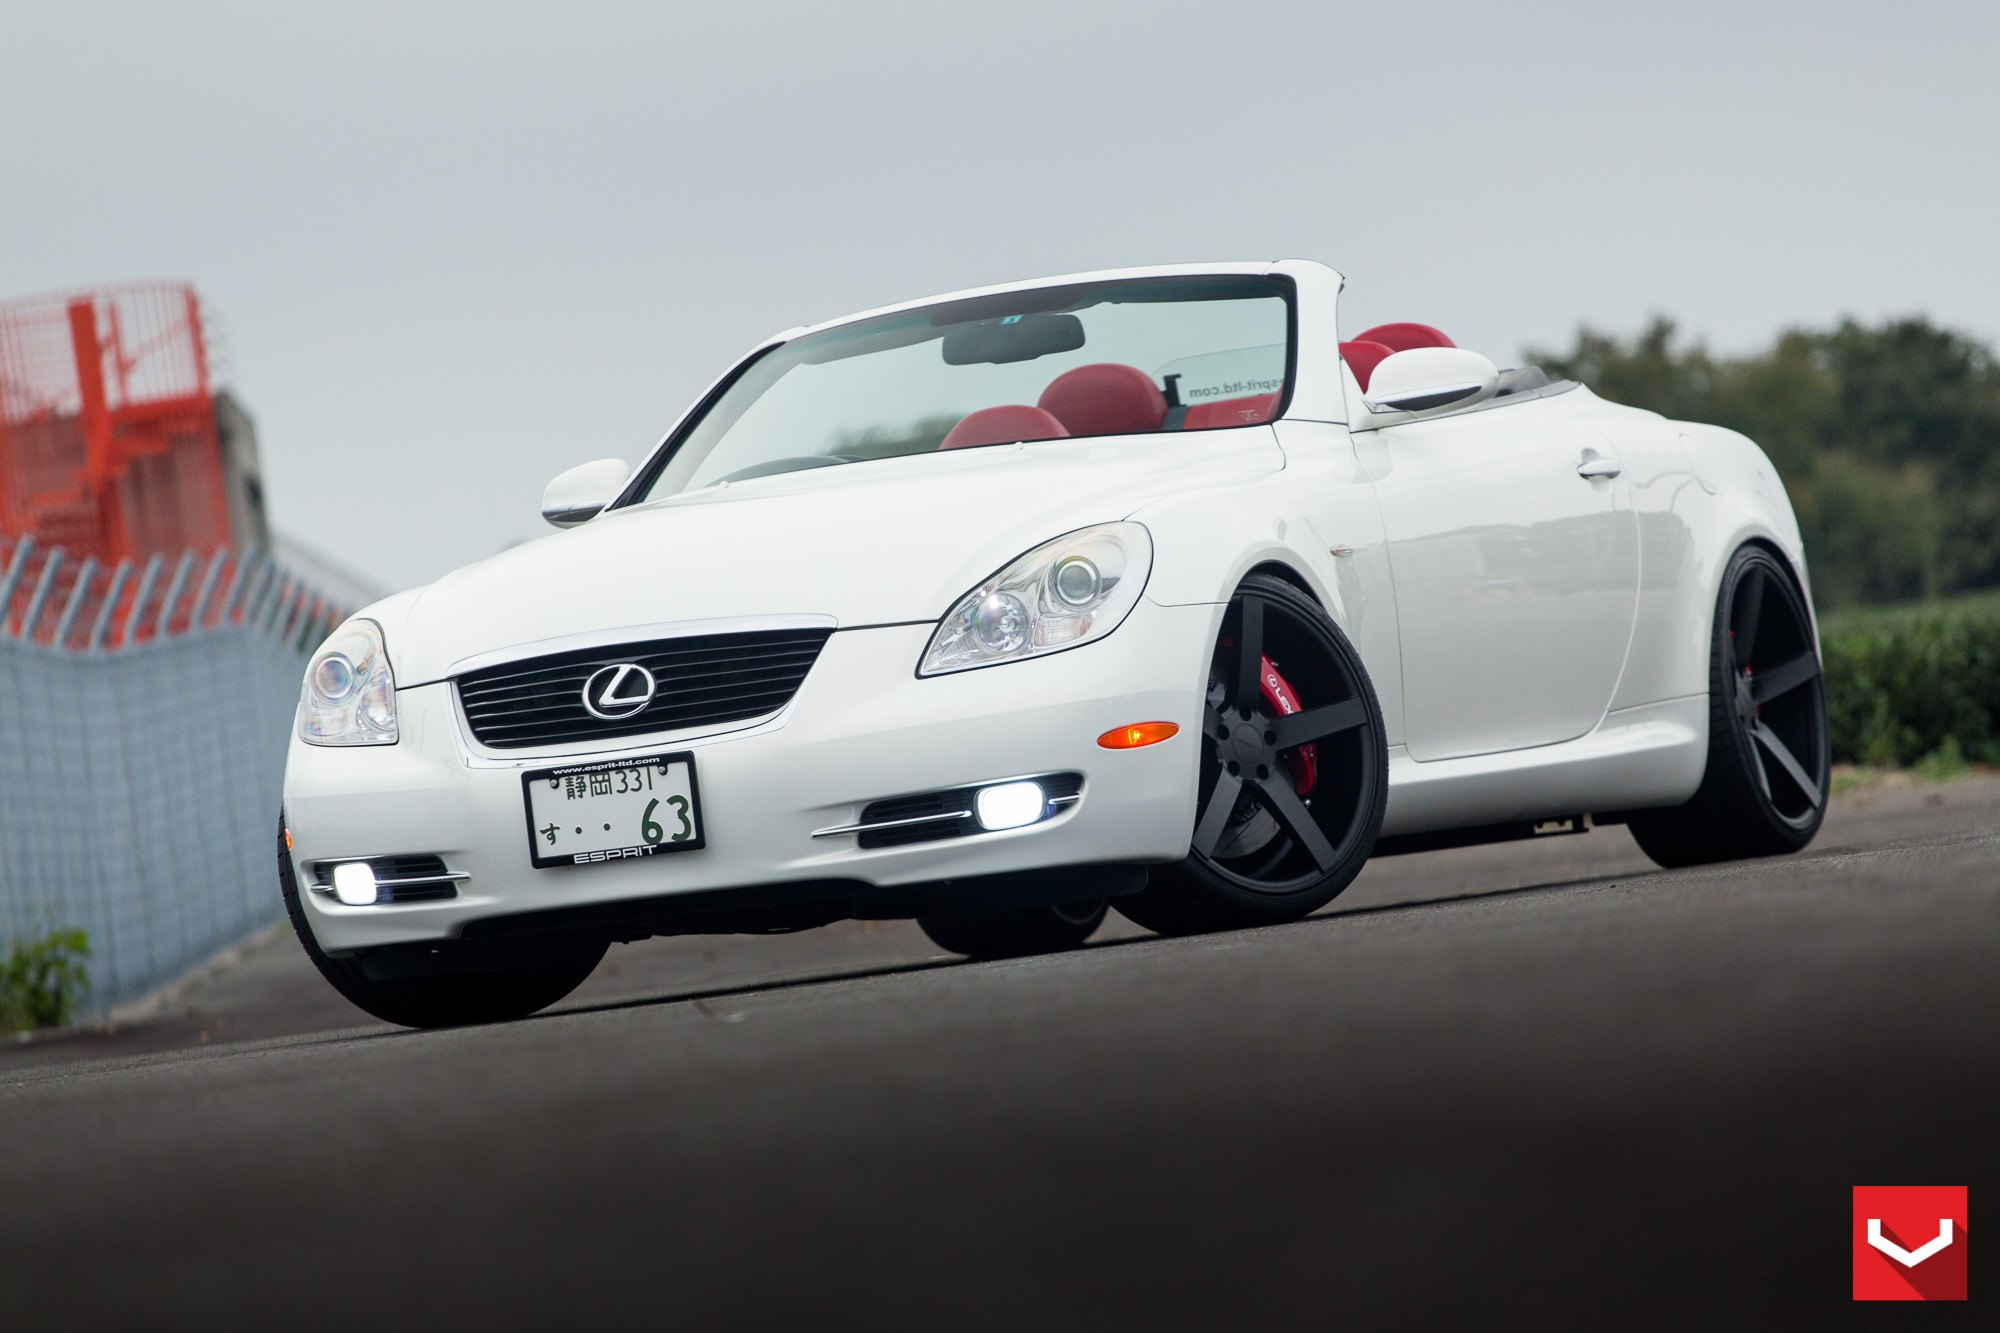 Sleek White Lexus SC on Matte Black Vossen Rims Fitted with Red